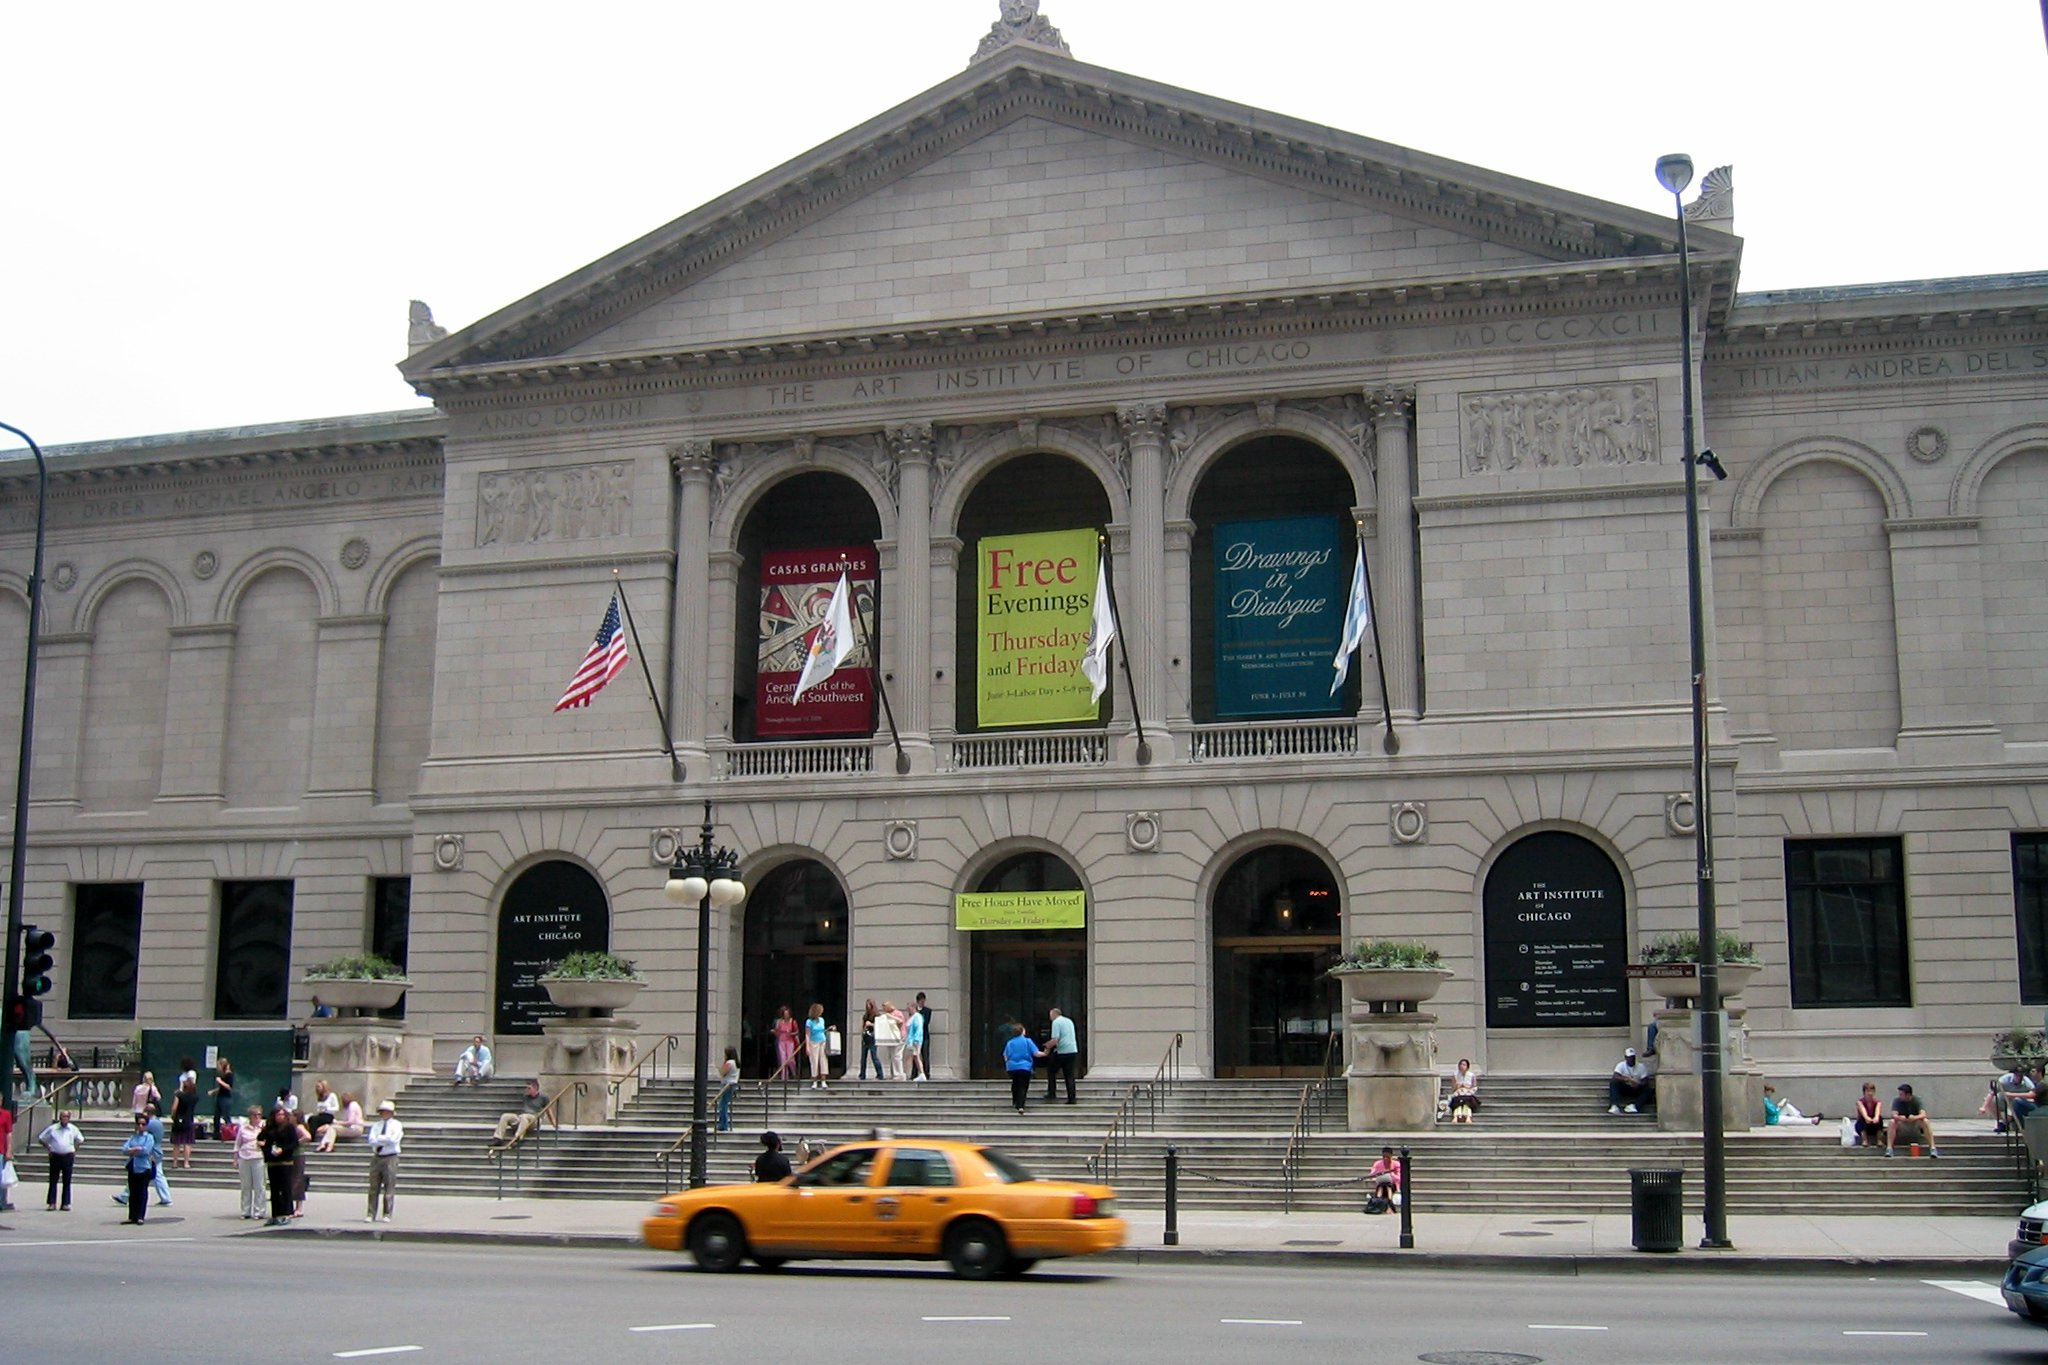 Natural Wonders Of The United States Art Institute Of Chicago Museum In Chicago Thousand